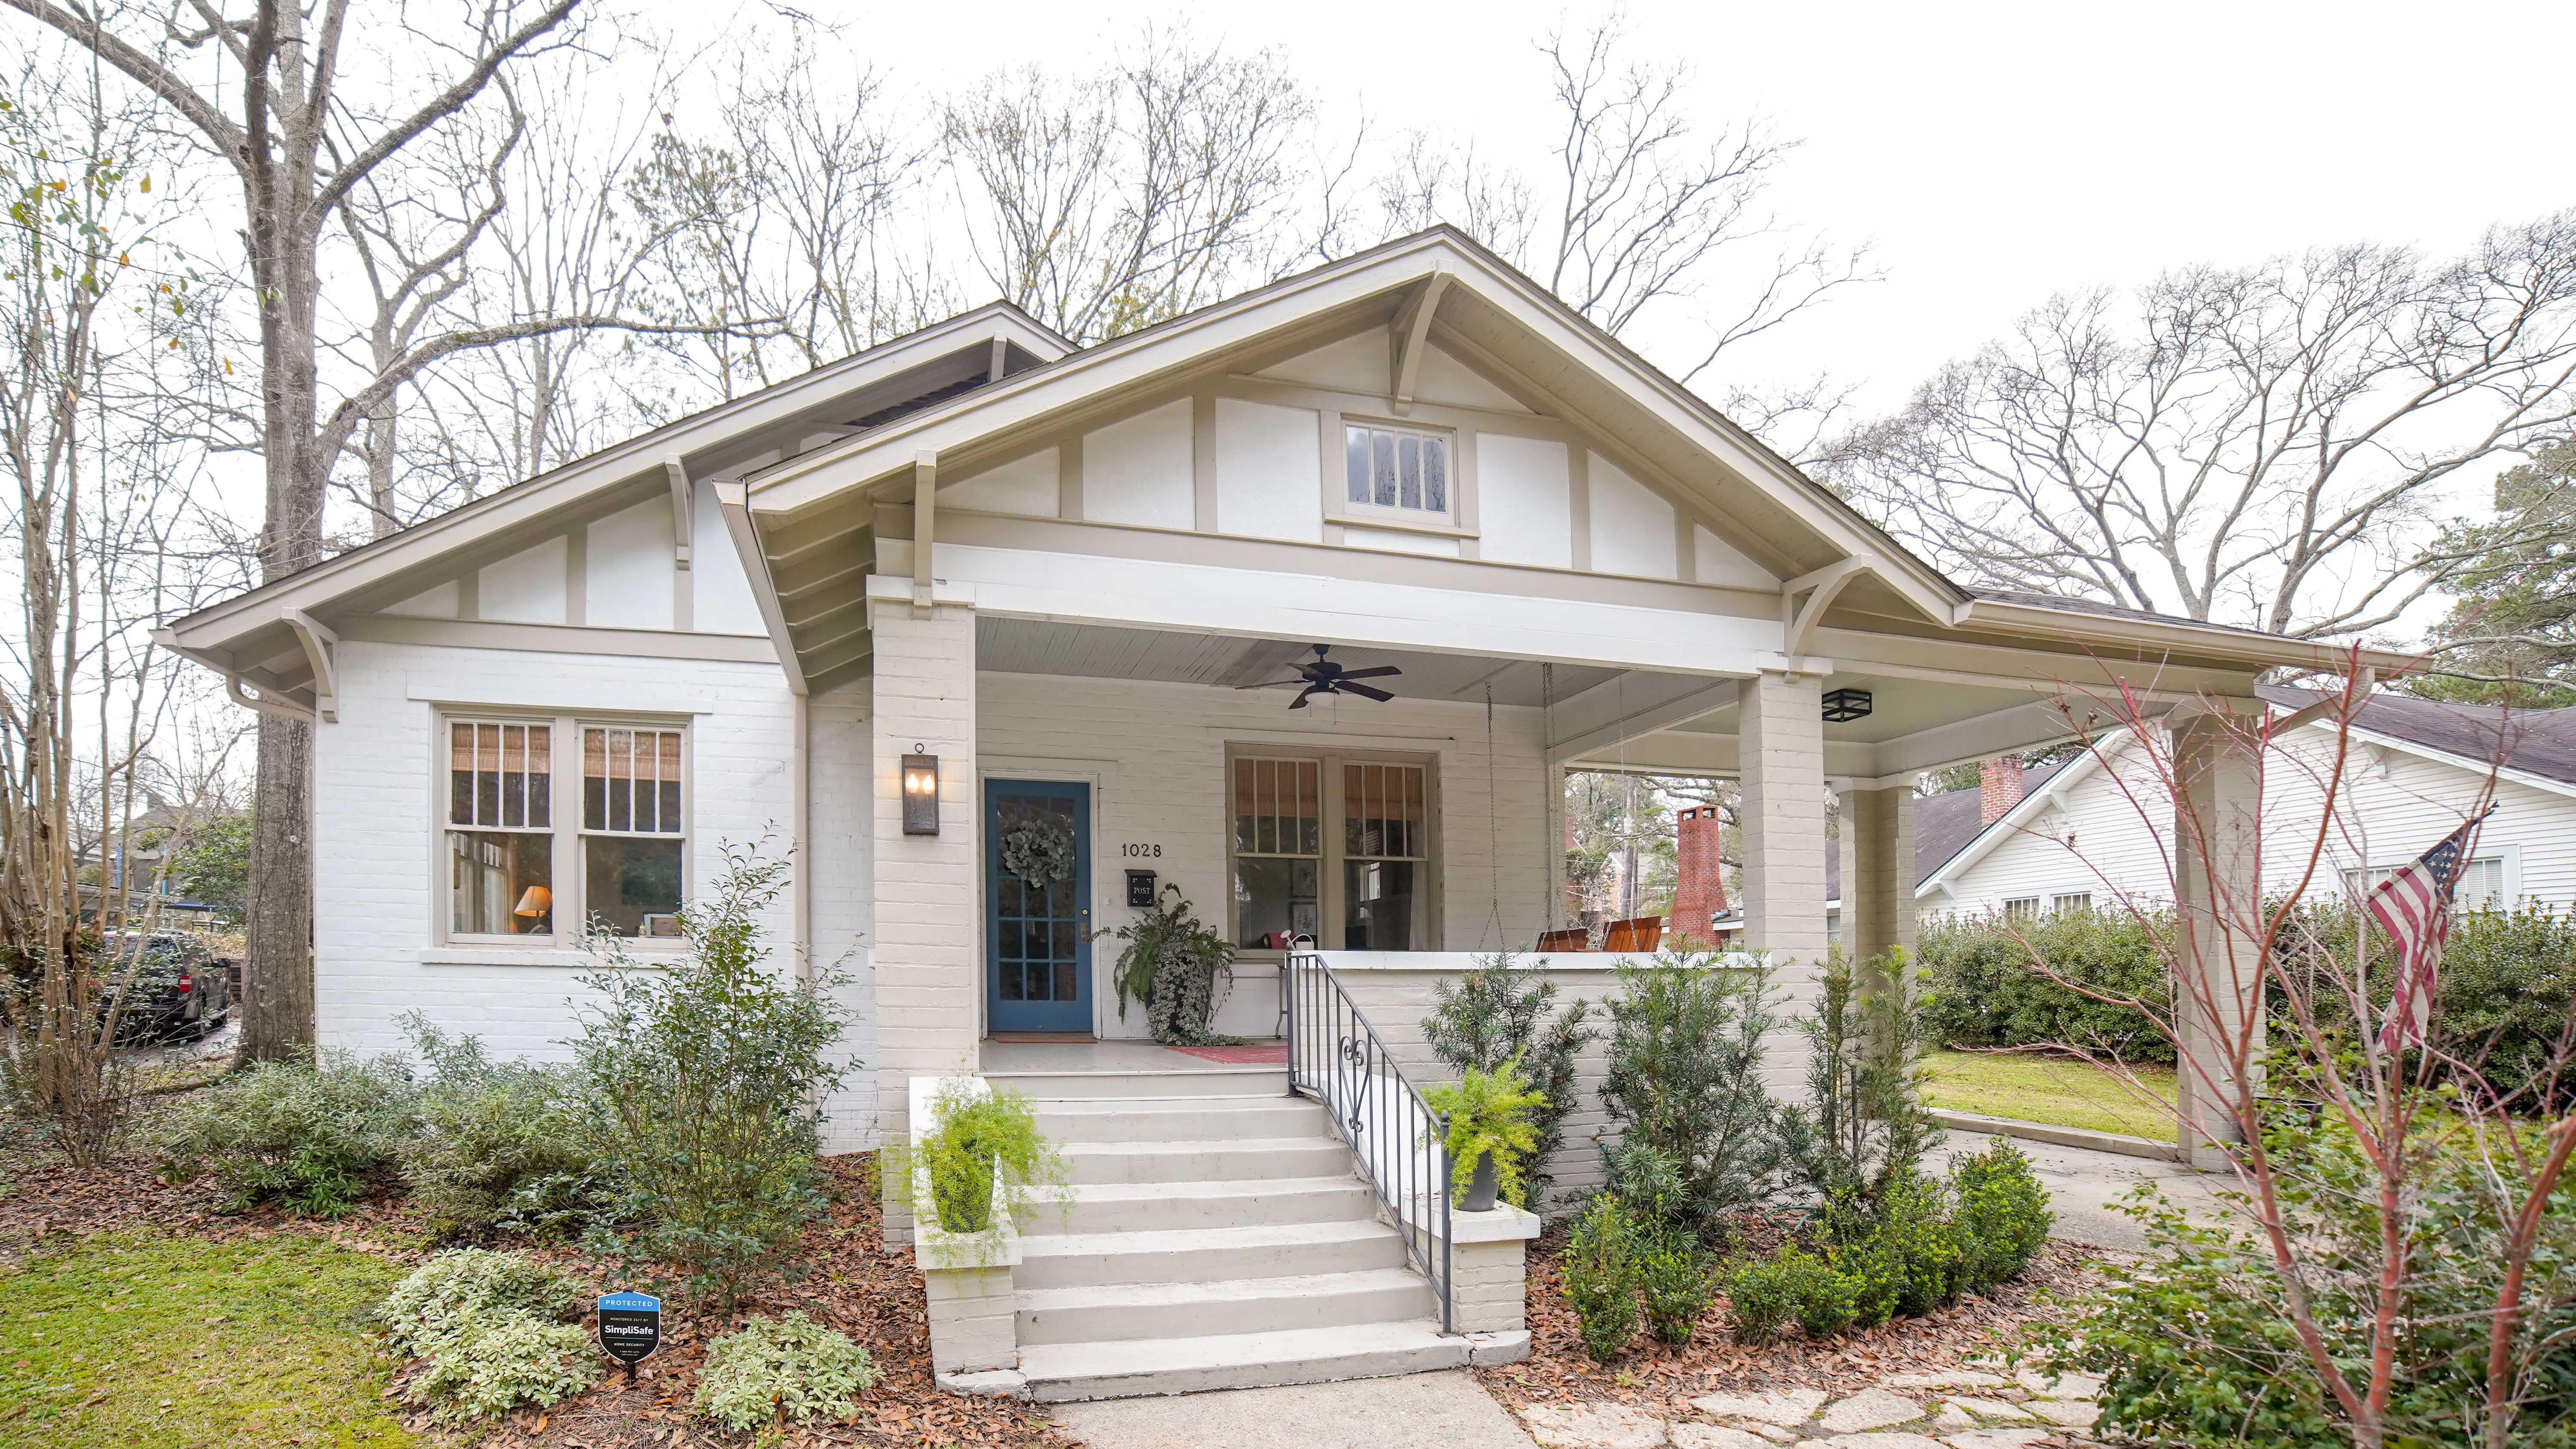 HGTV Home Town MS House for Sale Photos | Apartment Therapy